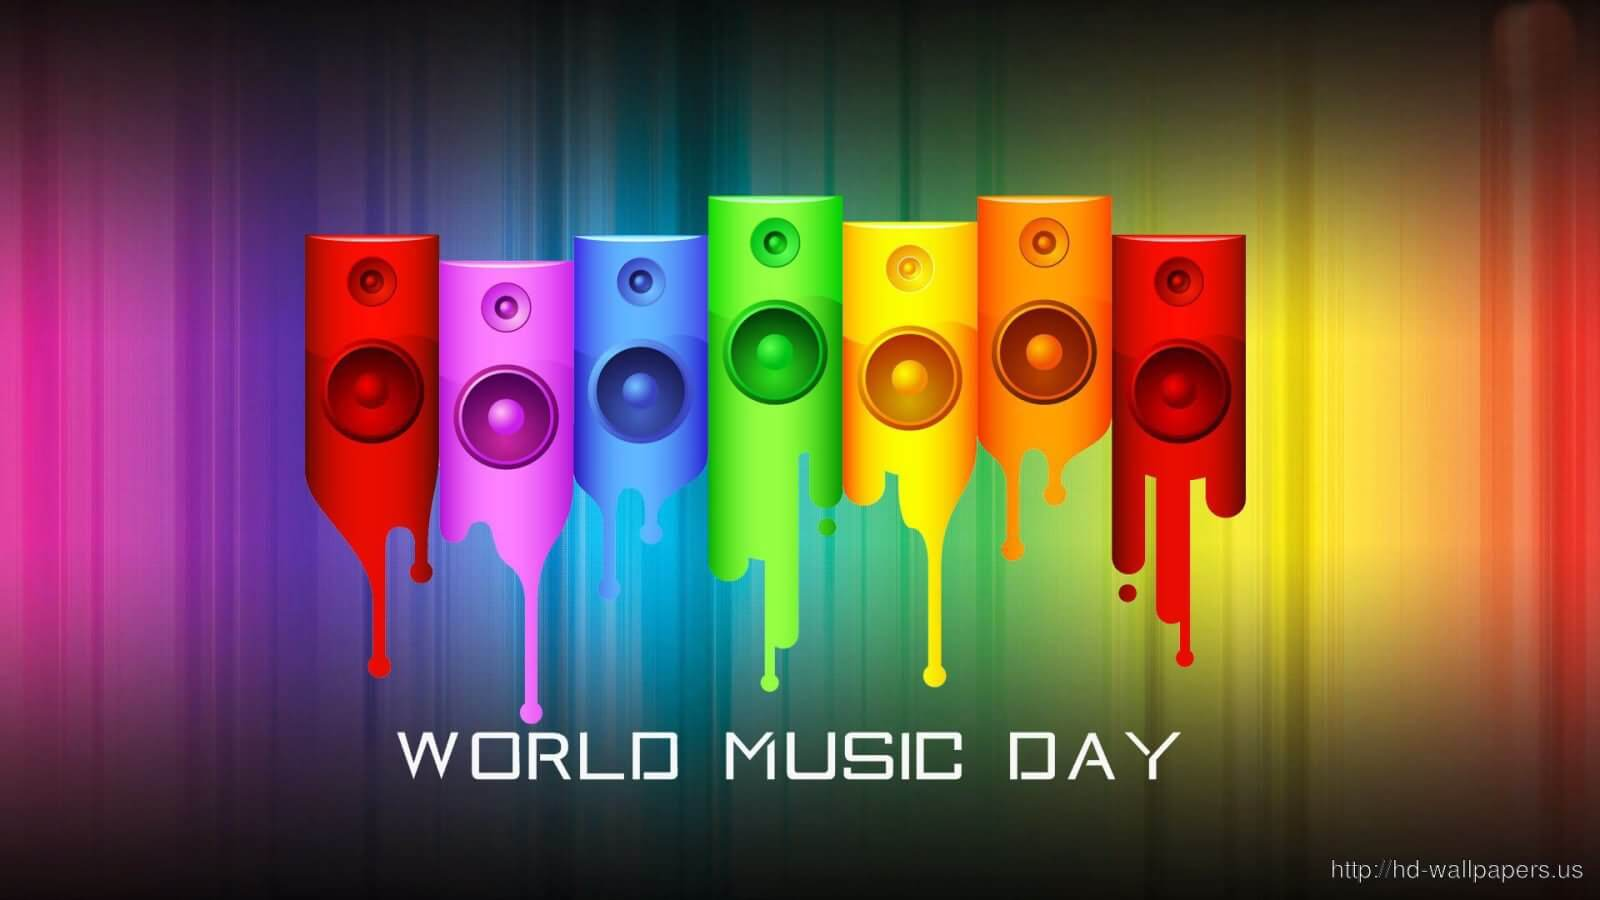 Musical Birthday Quotes Wallpapers 35 World Music Day F 234 Te De La Musique Wishes And Wallpapers